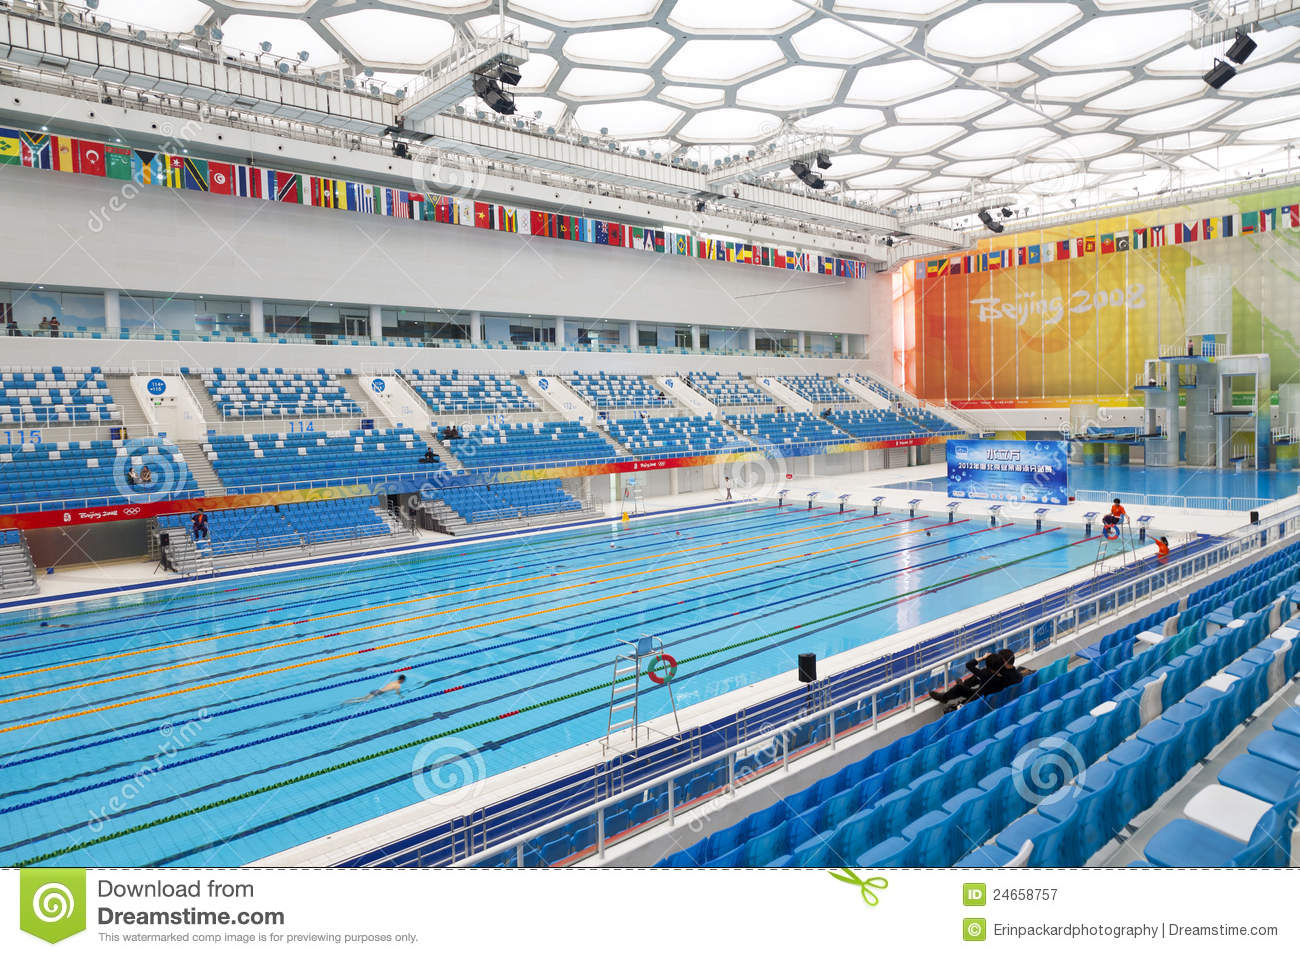 Piscine olympique photographie ditorial image 24658757 for Piscine xs prix